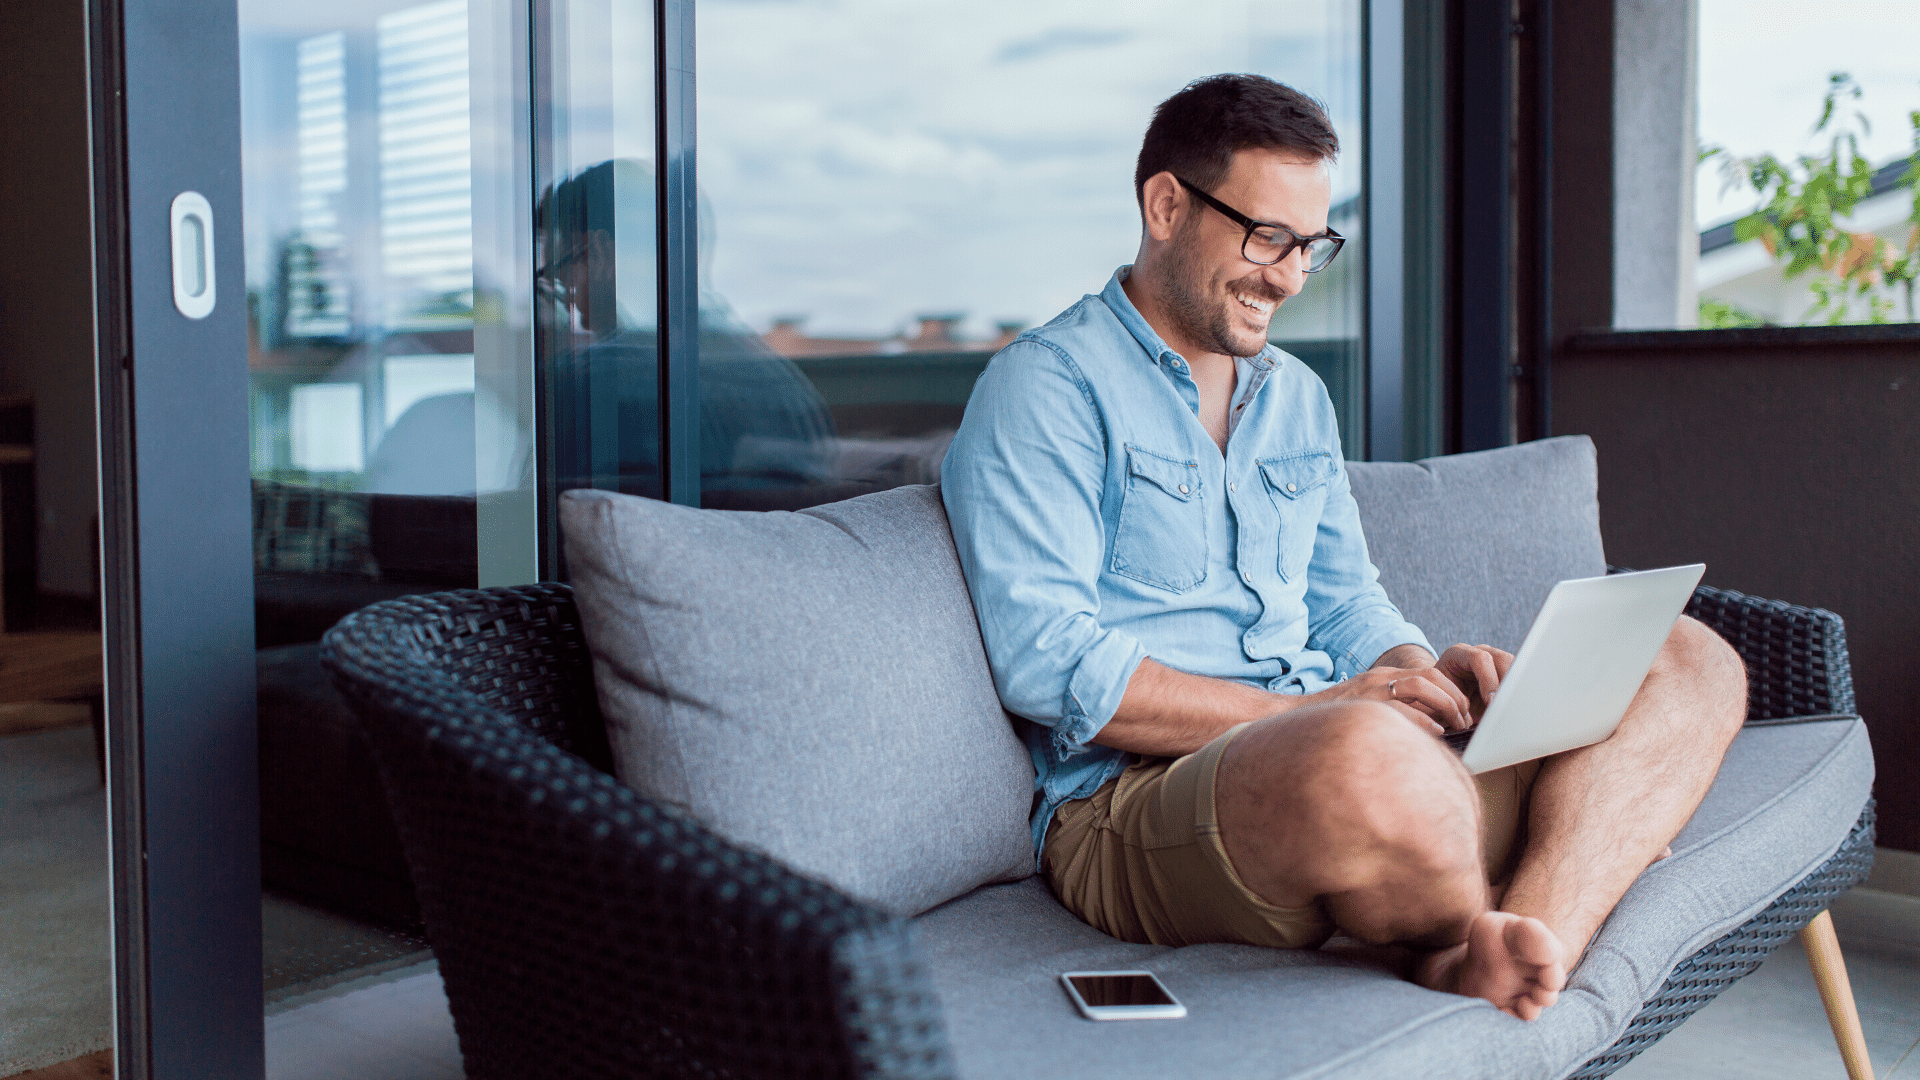 What are the pros and cons of remote working?